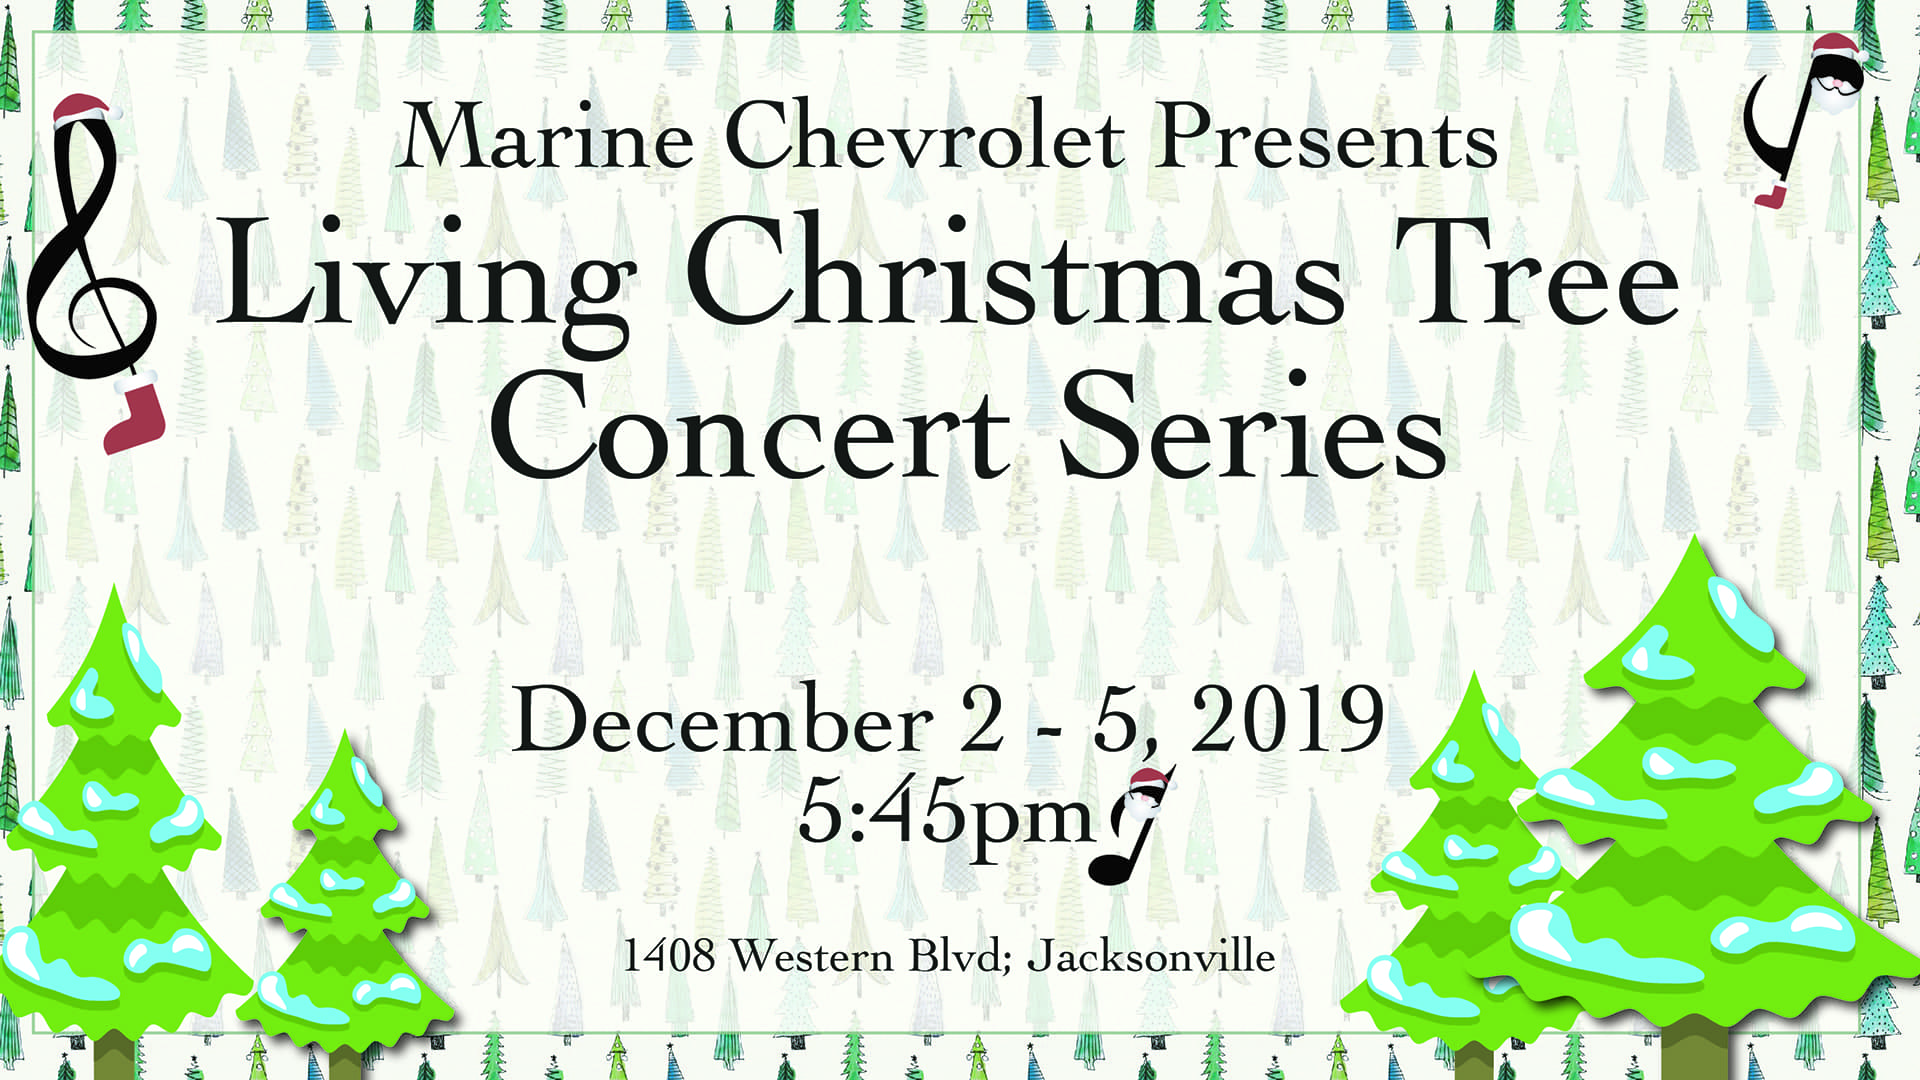 Living Christmas Tree Concert Series at Marine Chevrolet December 2 - 5, 2019.